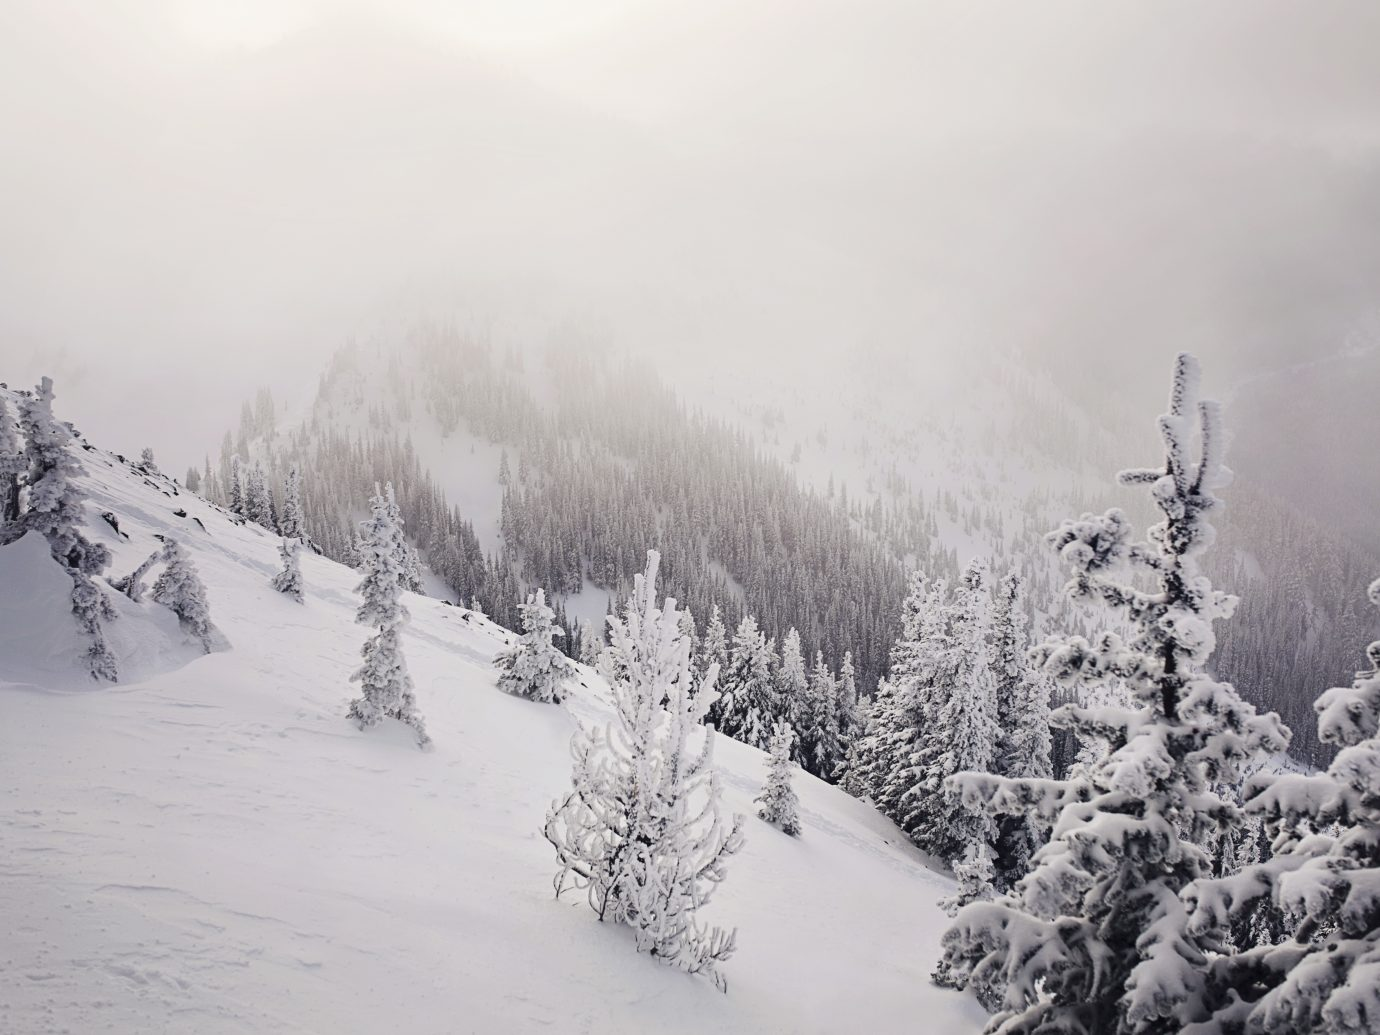 Winter view from Crystal Mountain, Washington State